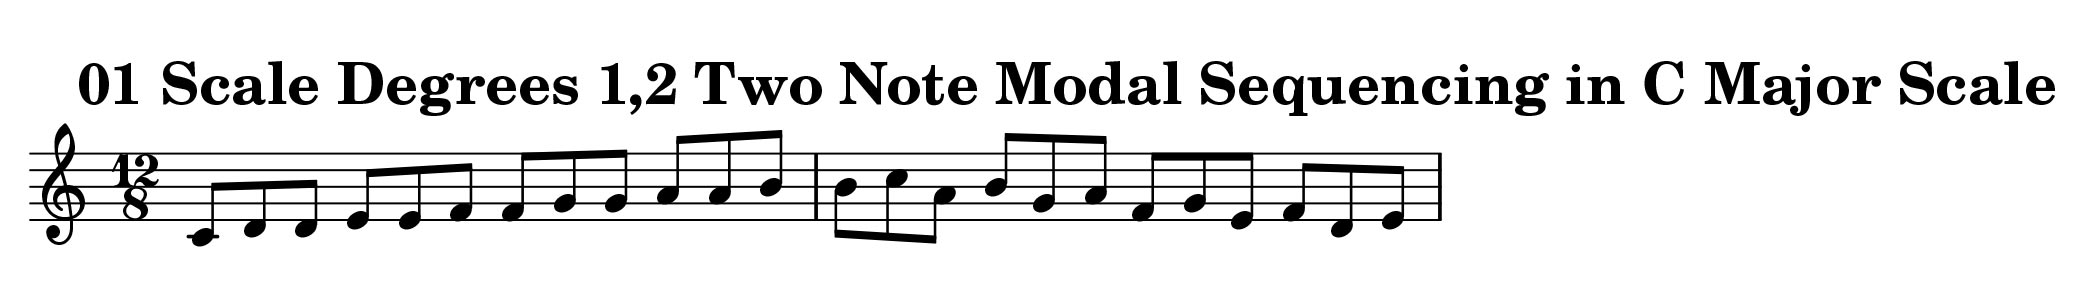 Two Note Modal Sequence Ascending and Descending in C Major by Bruce Arnold for Muse Eek Publishing